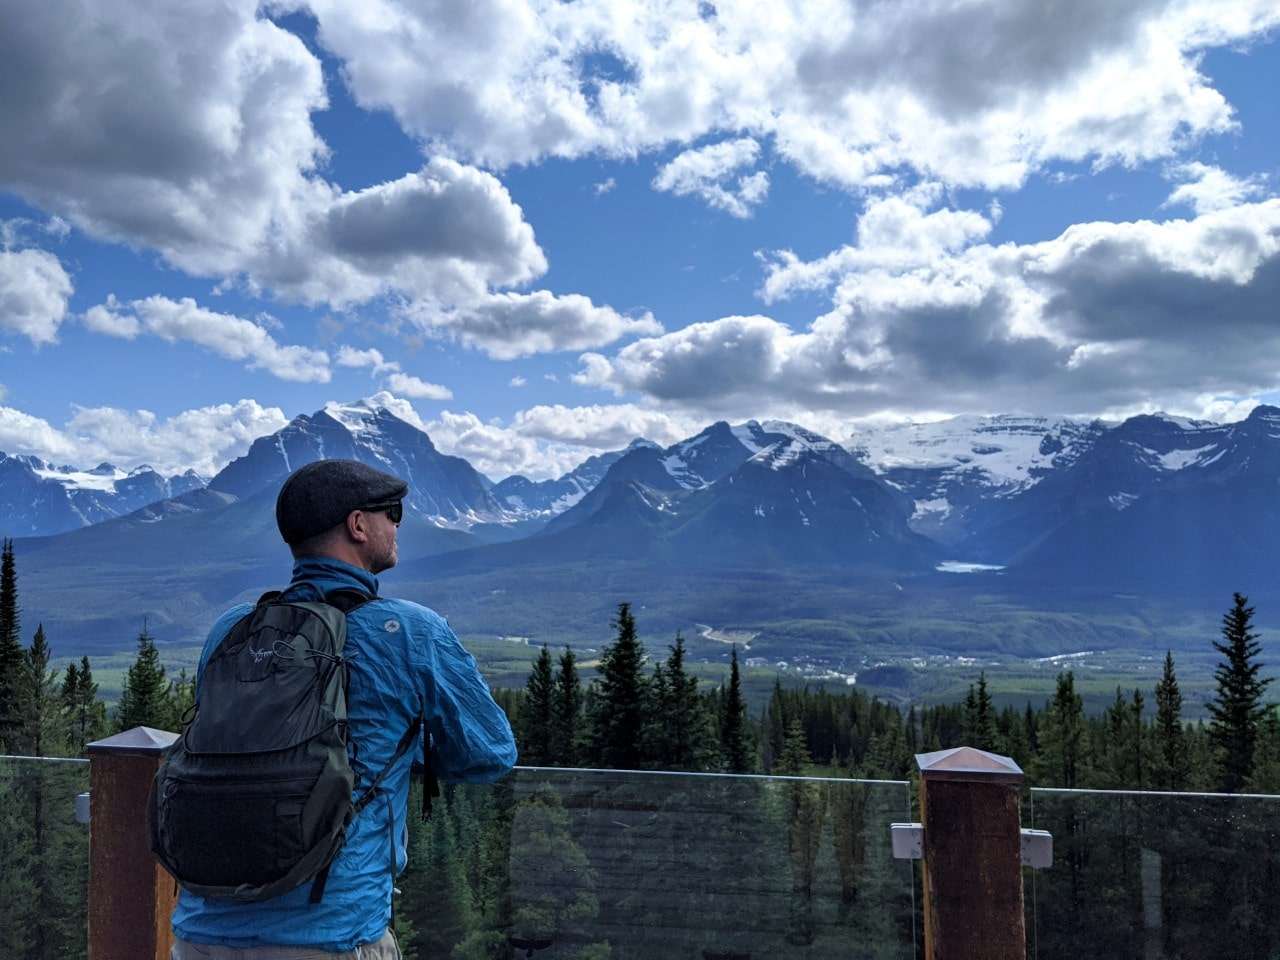 JR standing in front of glass patio fence at Lake Louise Ski Resort in front of mountainous views